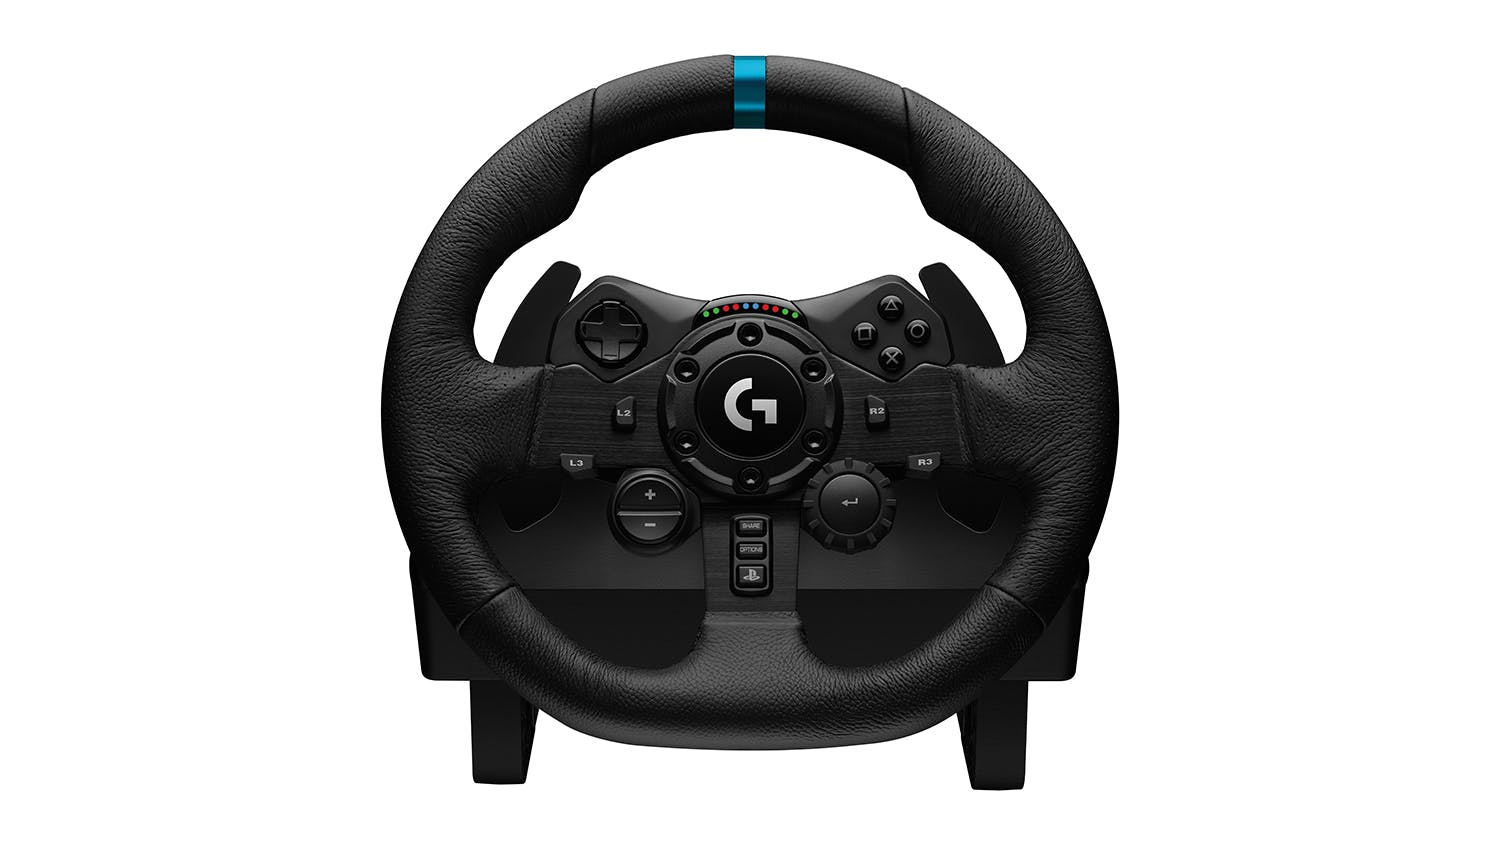 Logitech G923 Trueforce Racing Wheel and Pedals for PS4 and PC